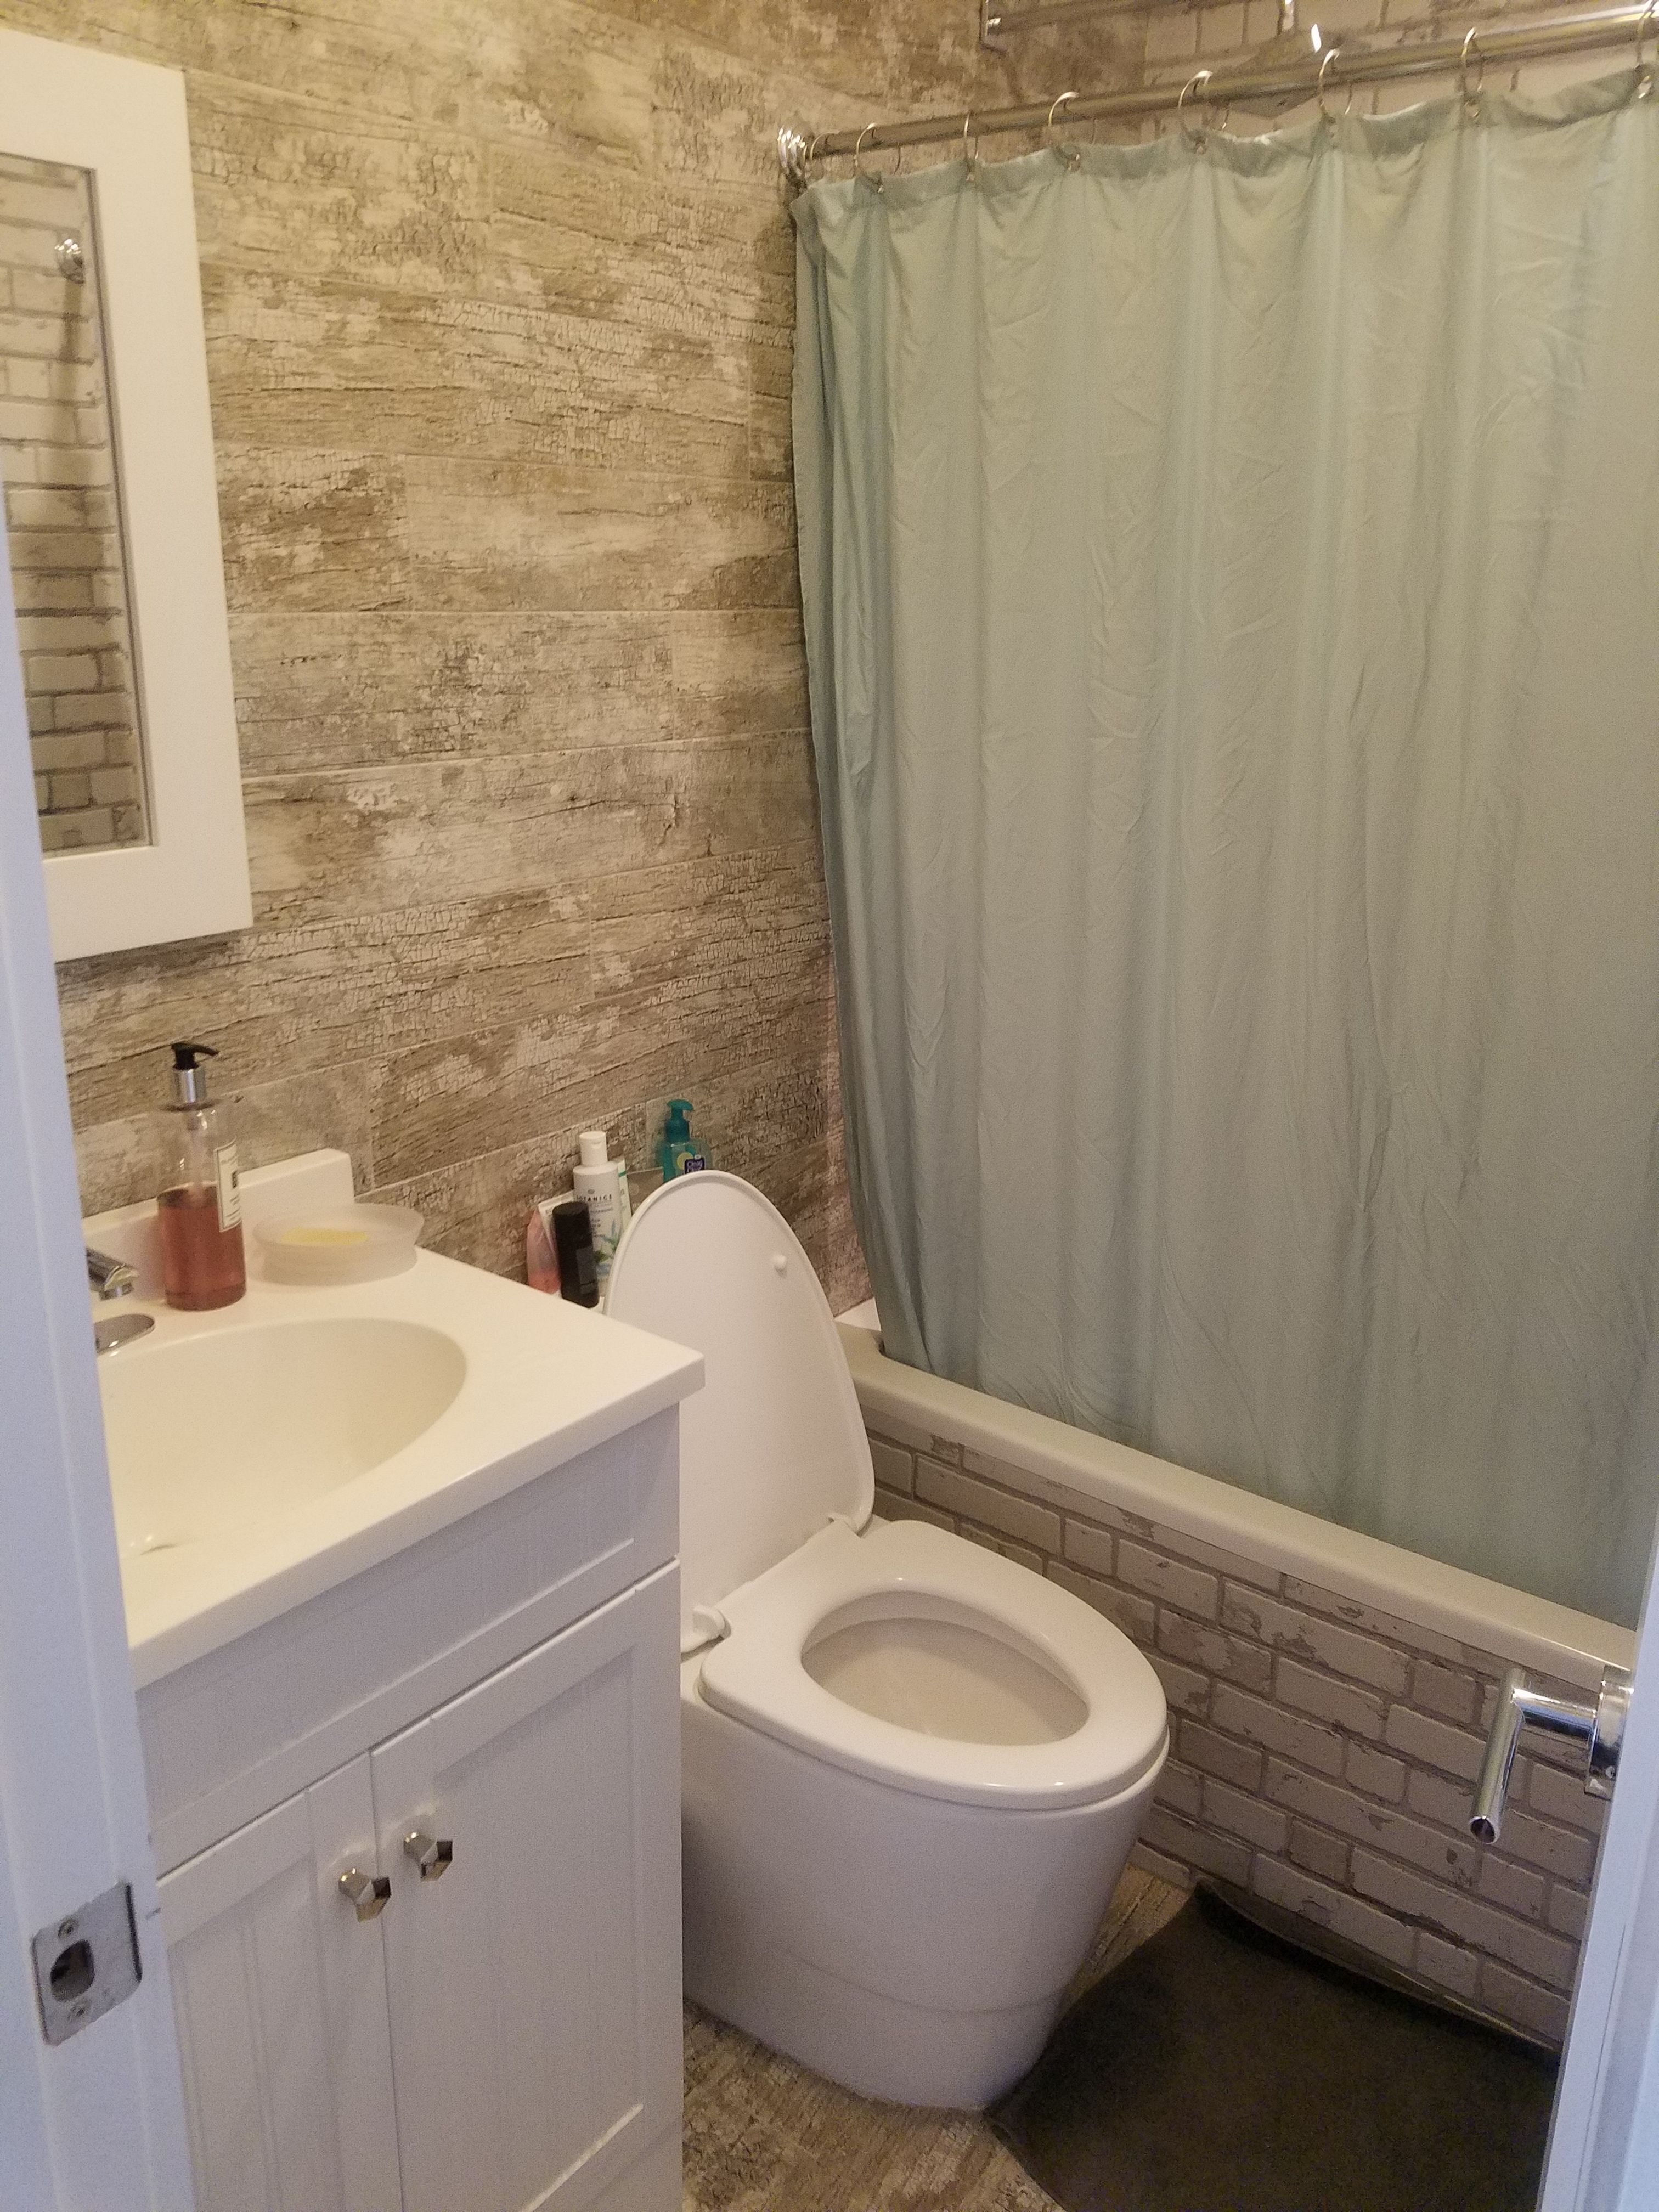 Rooms For Rent August 1st In Crown Heights! Photo 1 - BROWNSTONER-LISTING-d402577d74356a417bcc920c8a408560